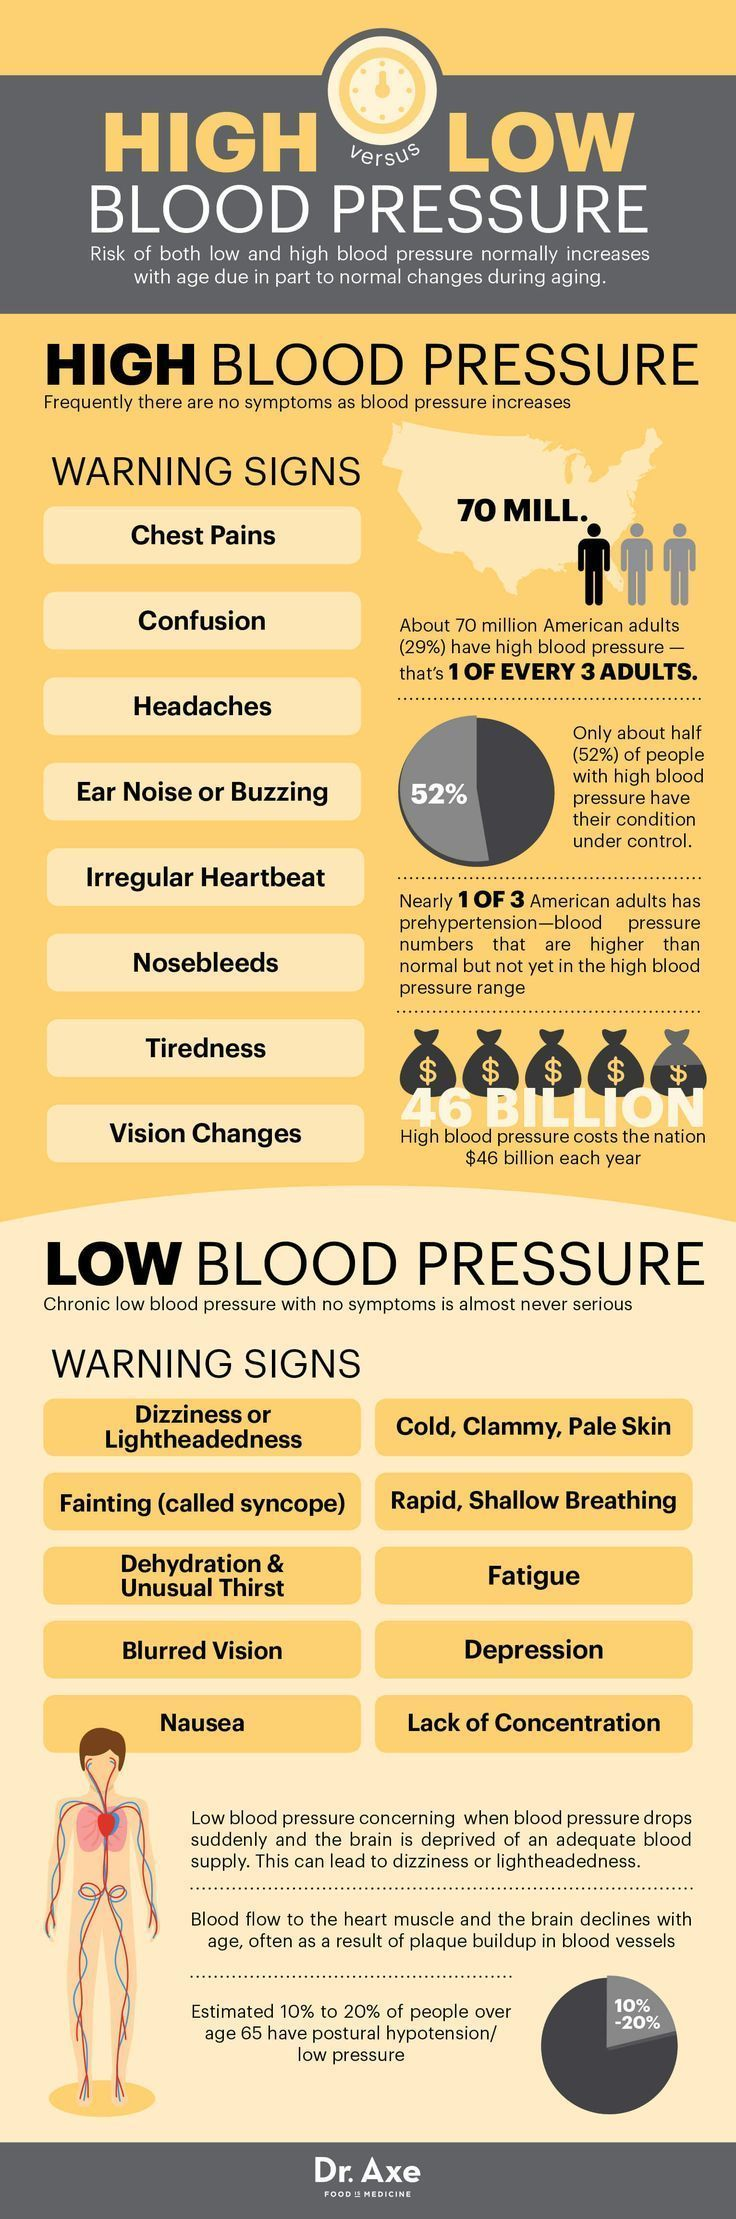 High Blood Pressure? Eat These 11 Foods to LOWER it.